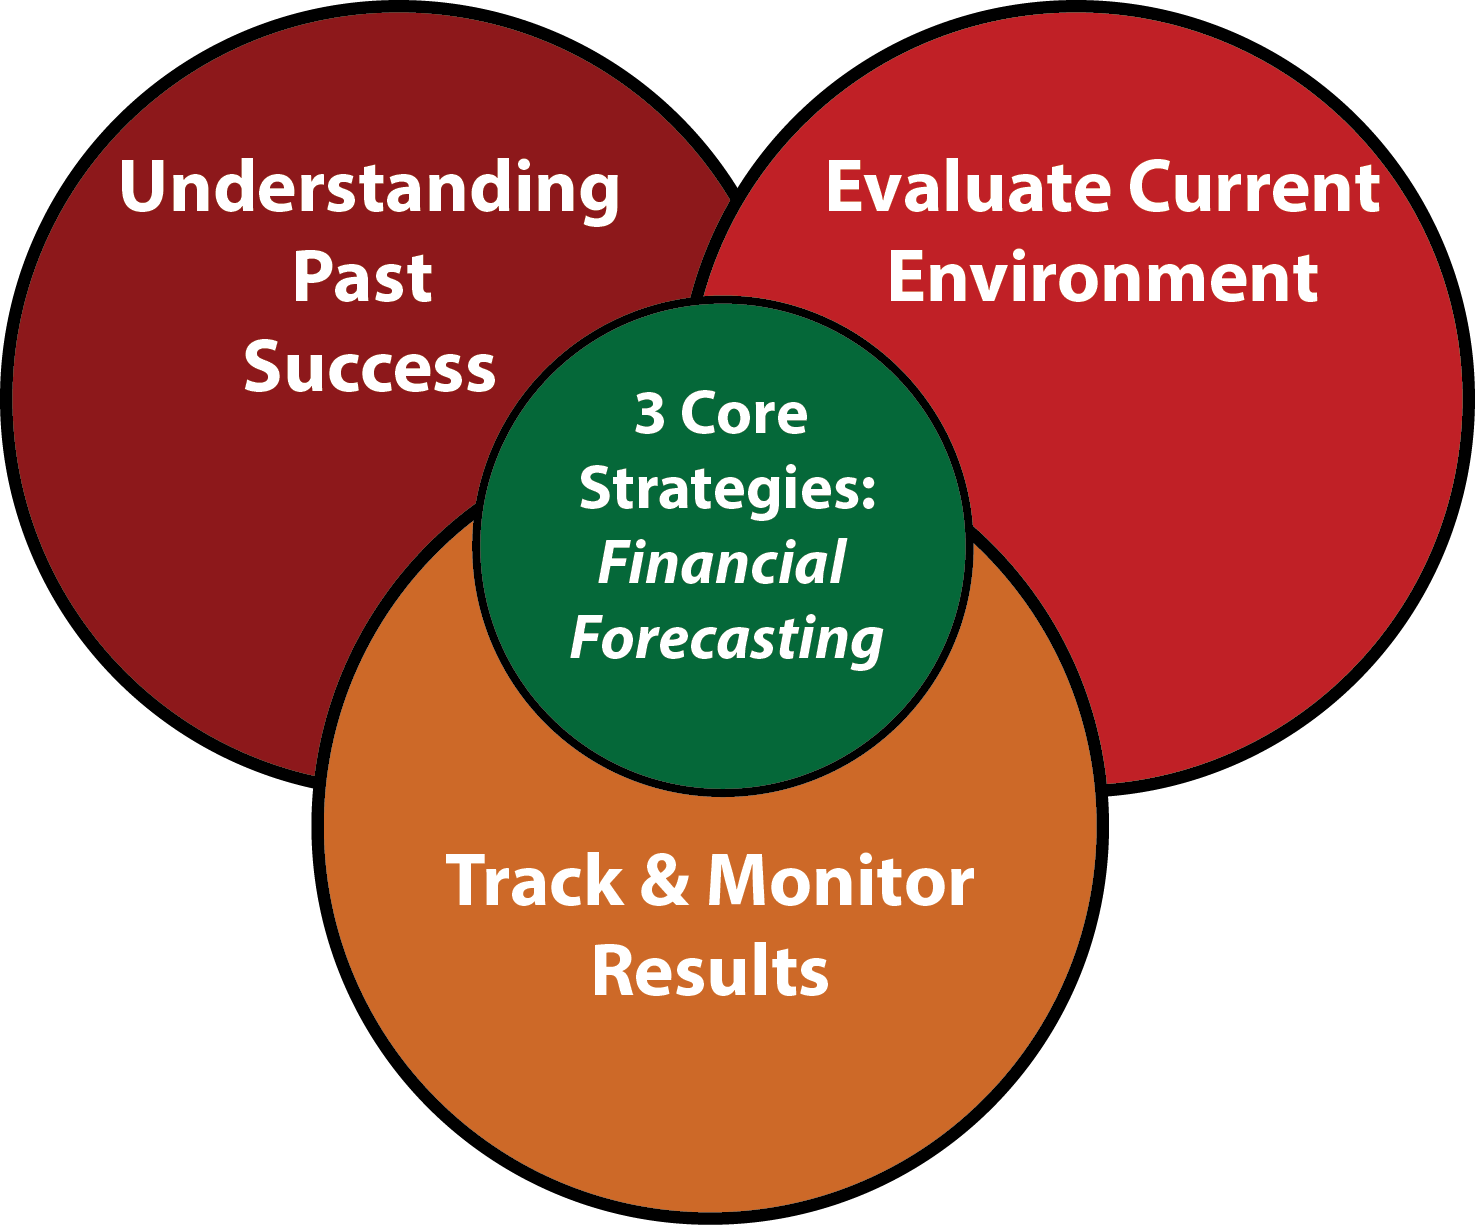 3 Core Strategies for Financial Forecasting